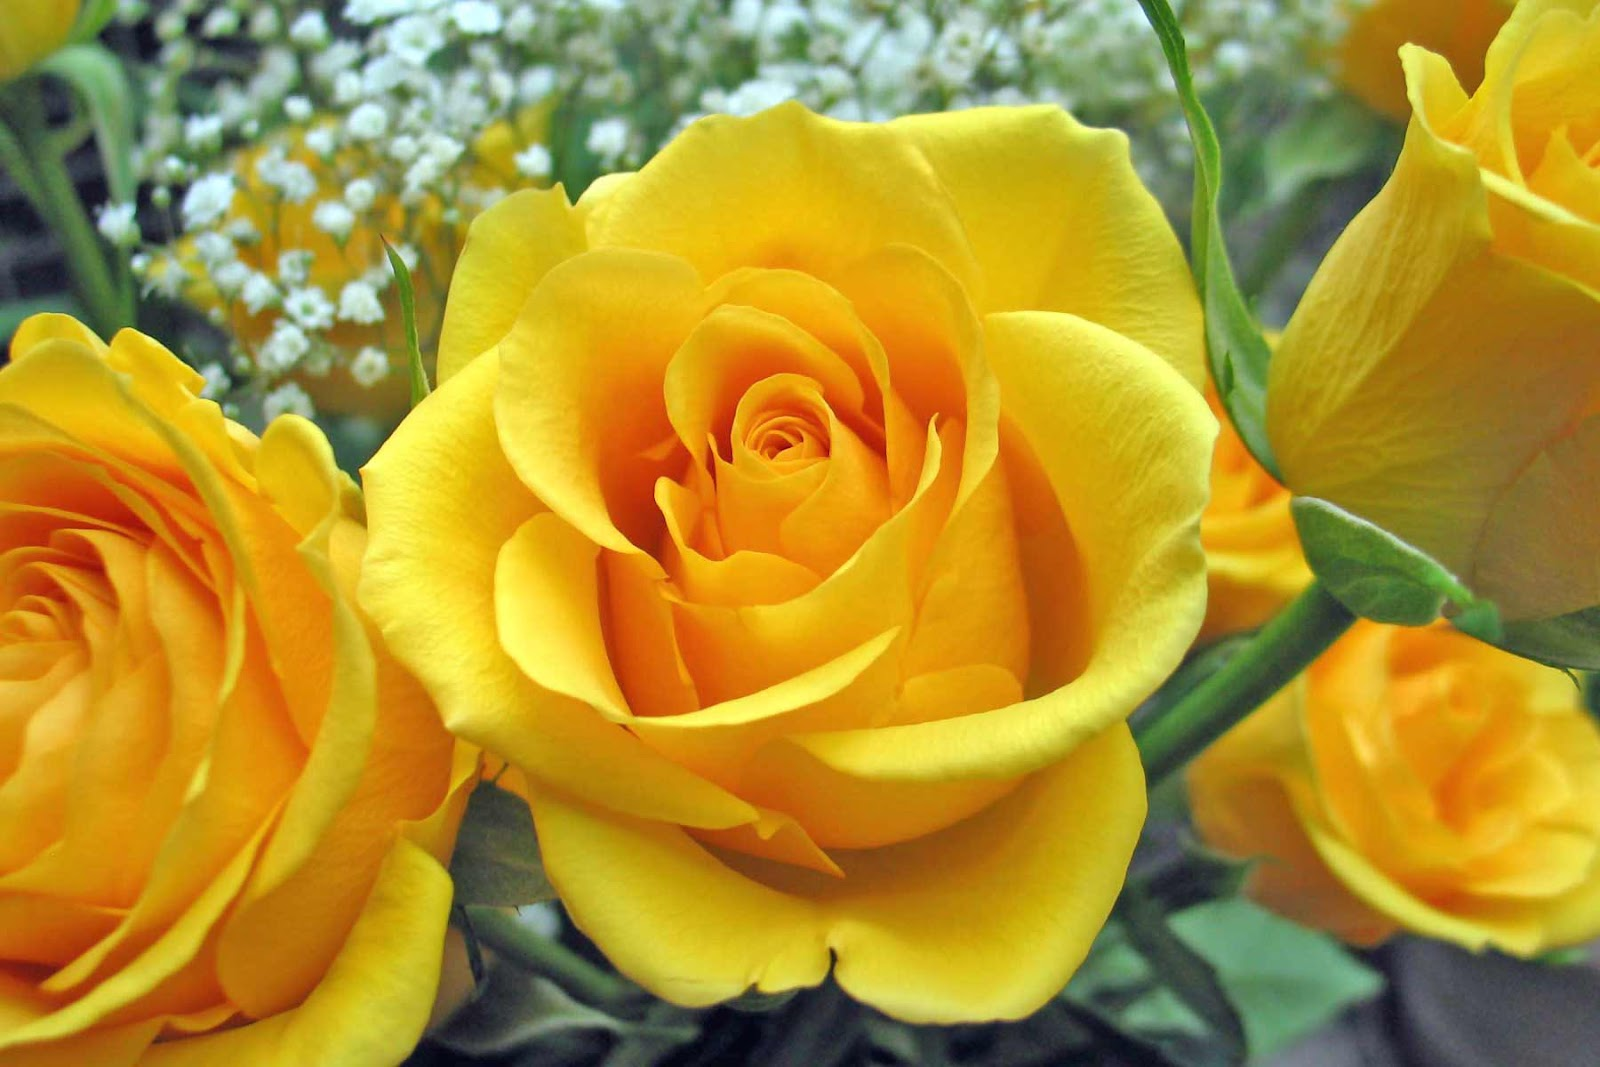 Yellow rose picture has its own characteristics that make us feel